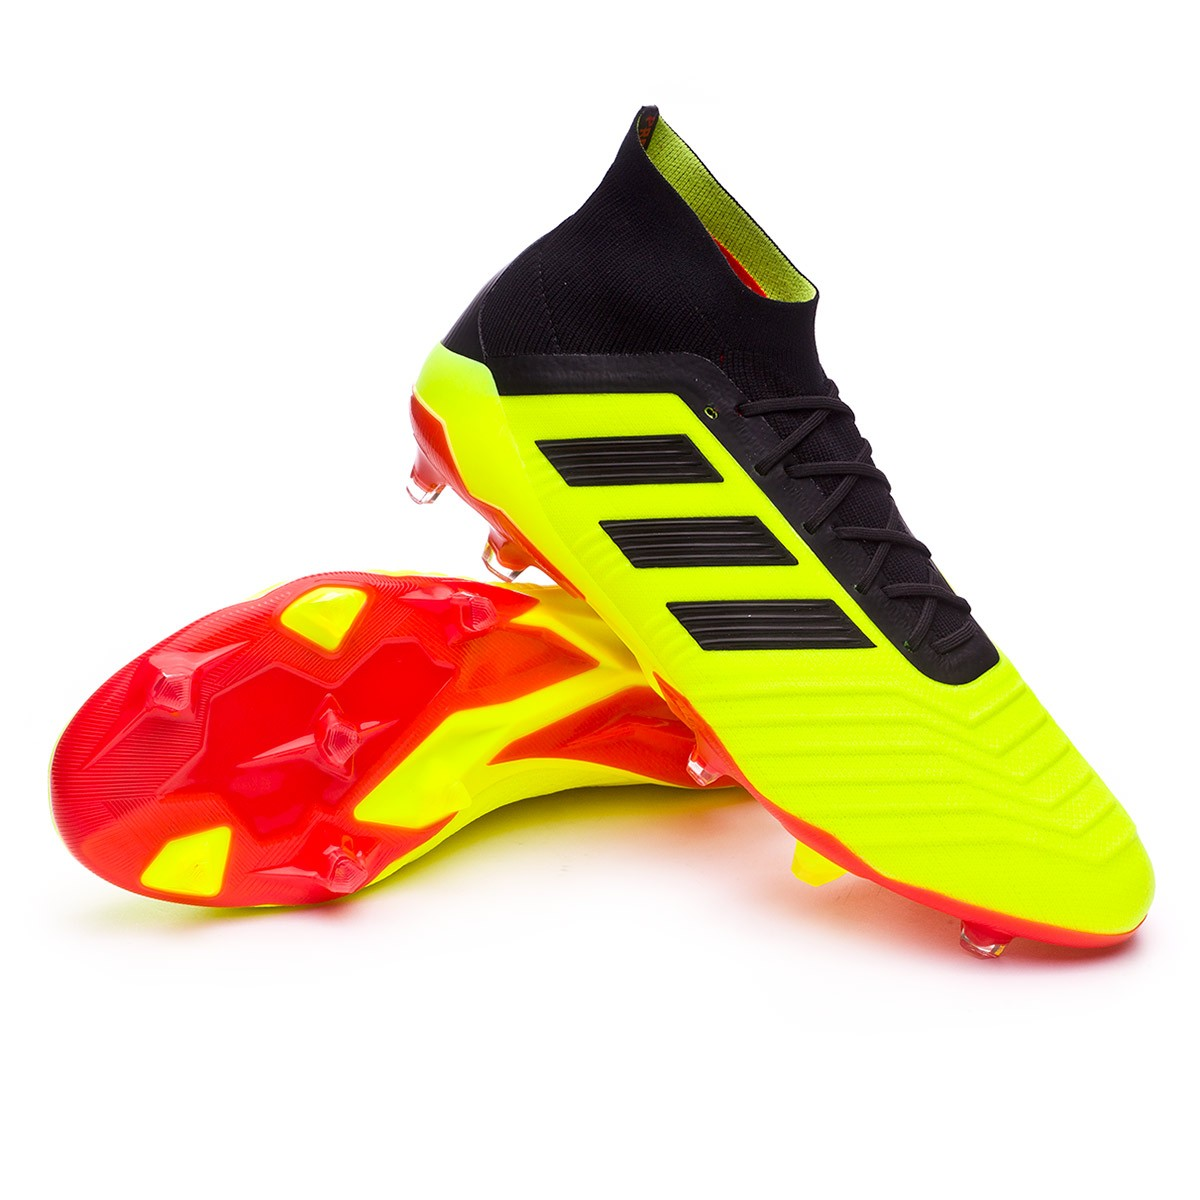 finest selection 8d9ed ed5ff adidas Predator 18.1 FG Boot